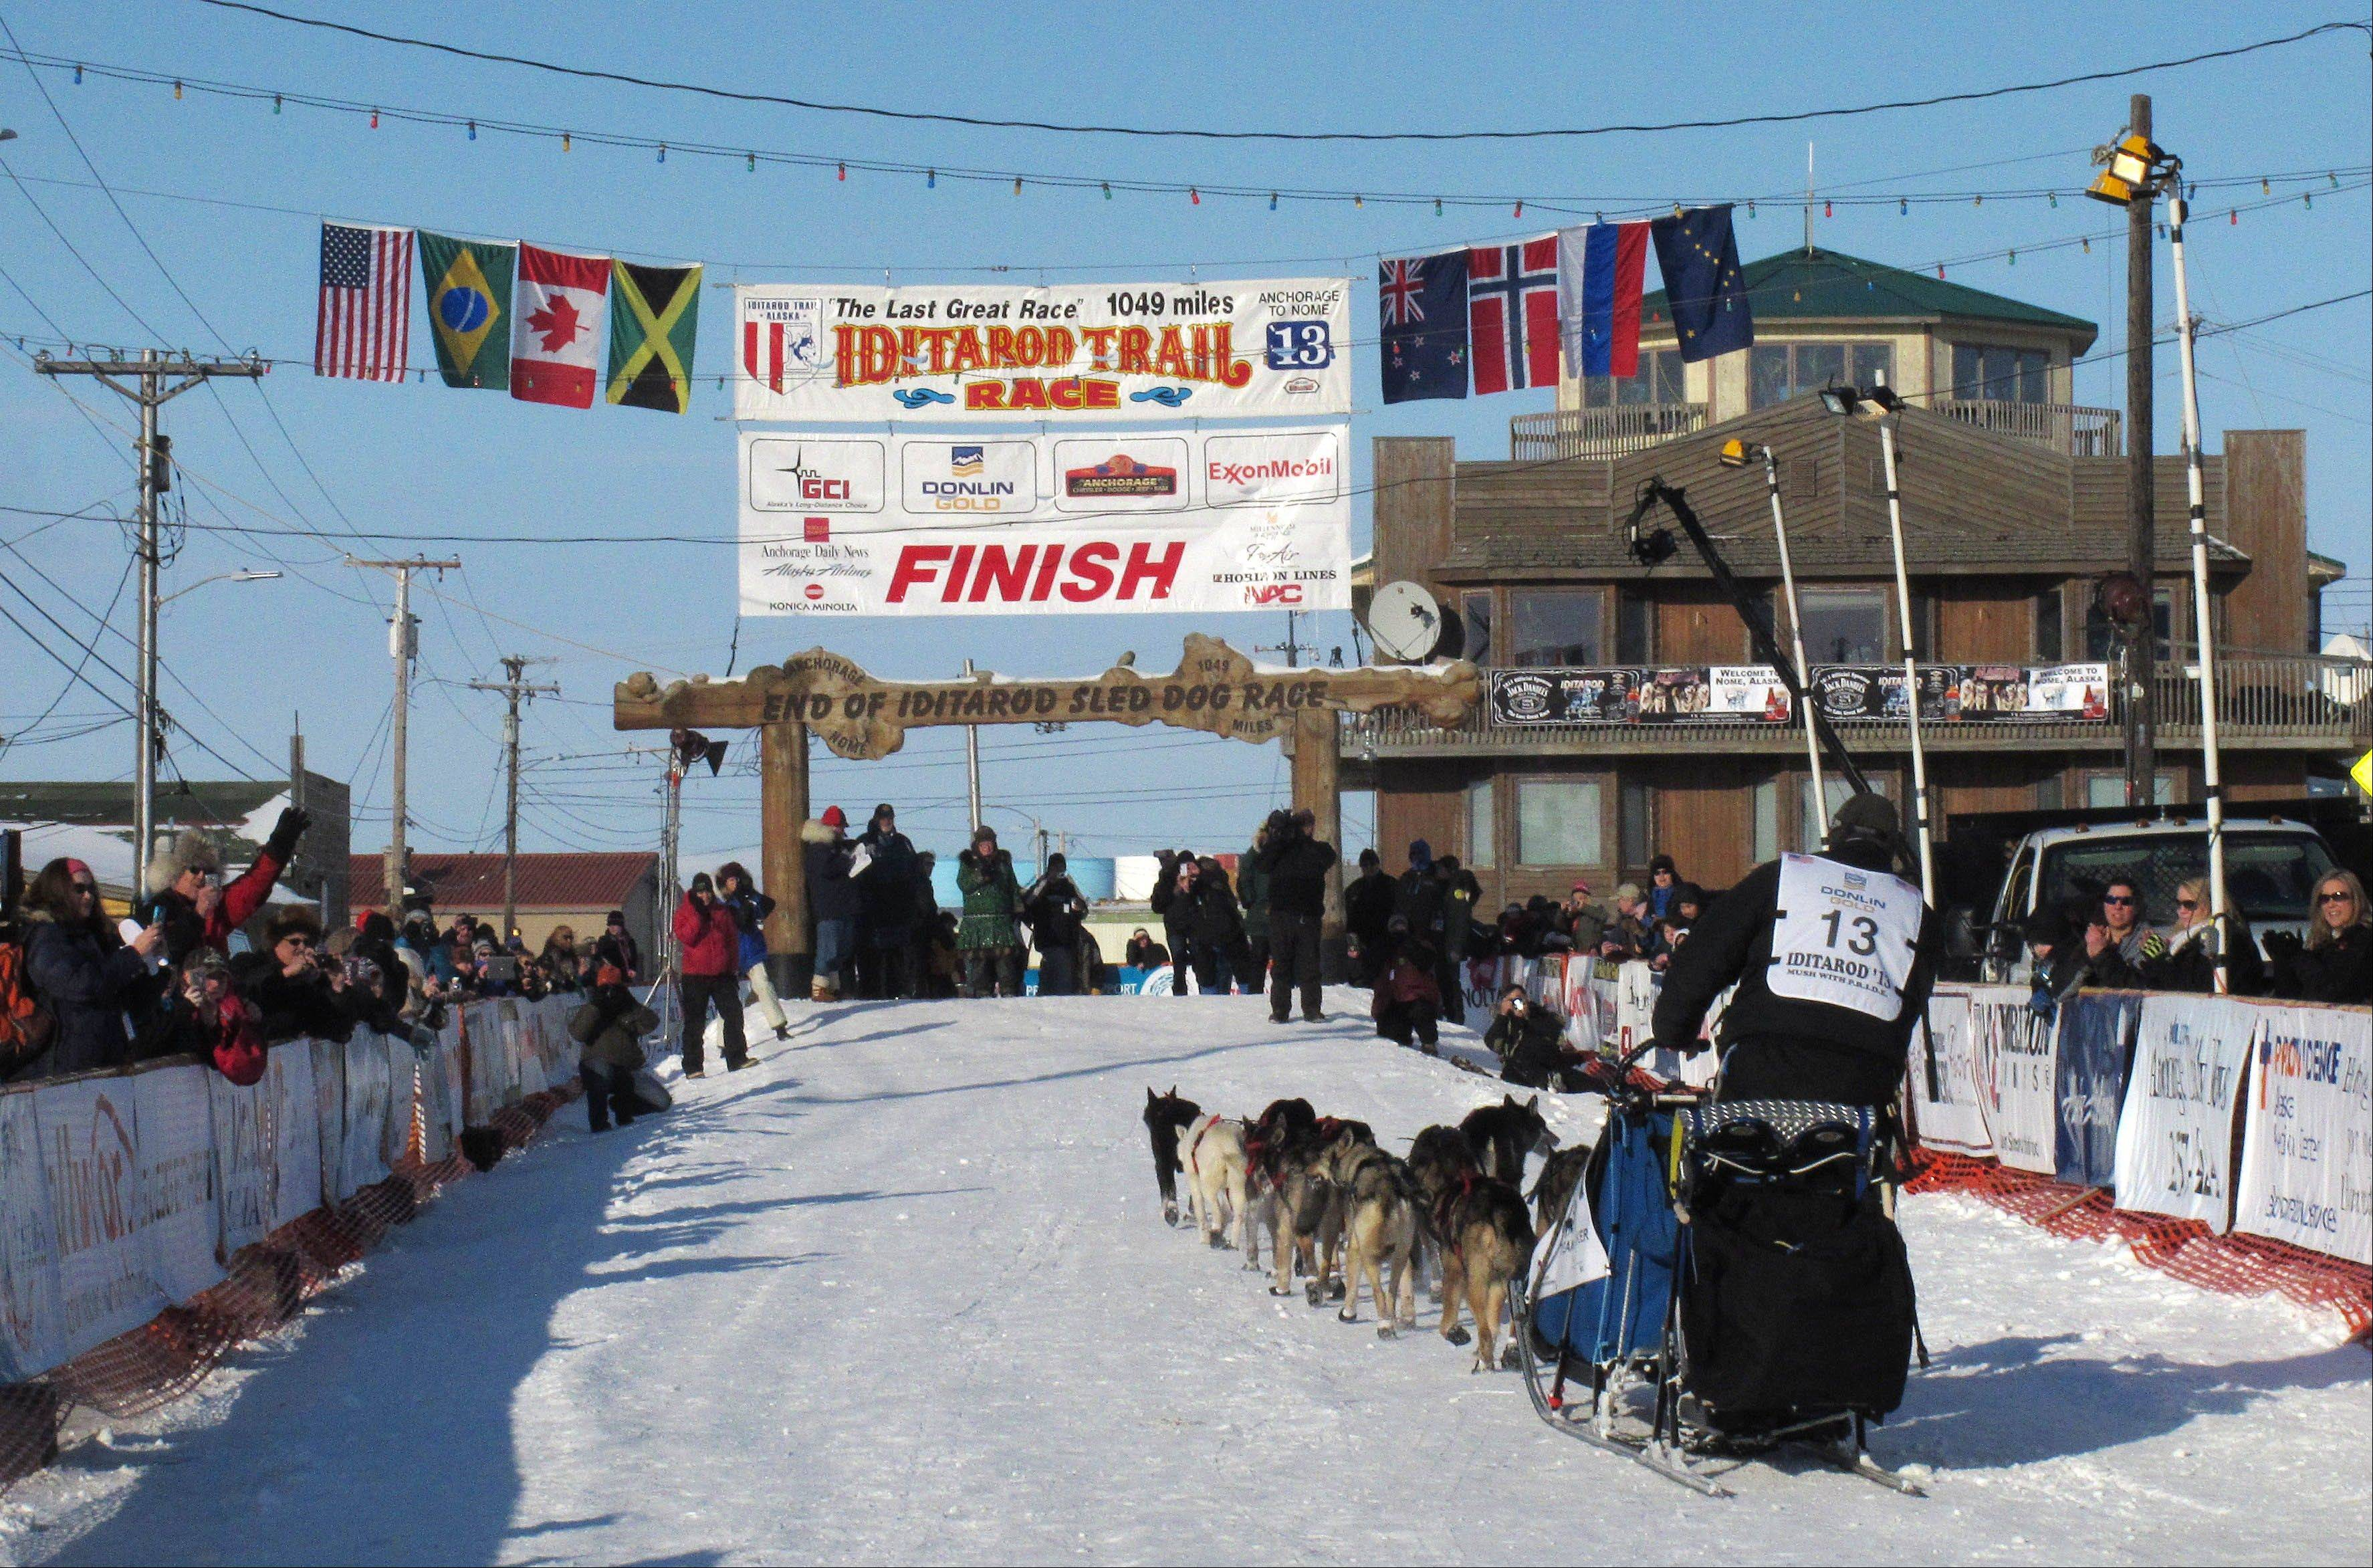 Residents greet Kotzebue musher John Baker as he nears the finish line in Nome, Alaska. If you want to see mushers cross the finish line at the world's most famous sled dog race in March 2014, better make your reservations soon.